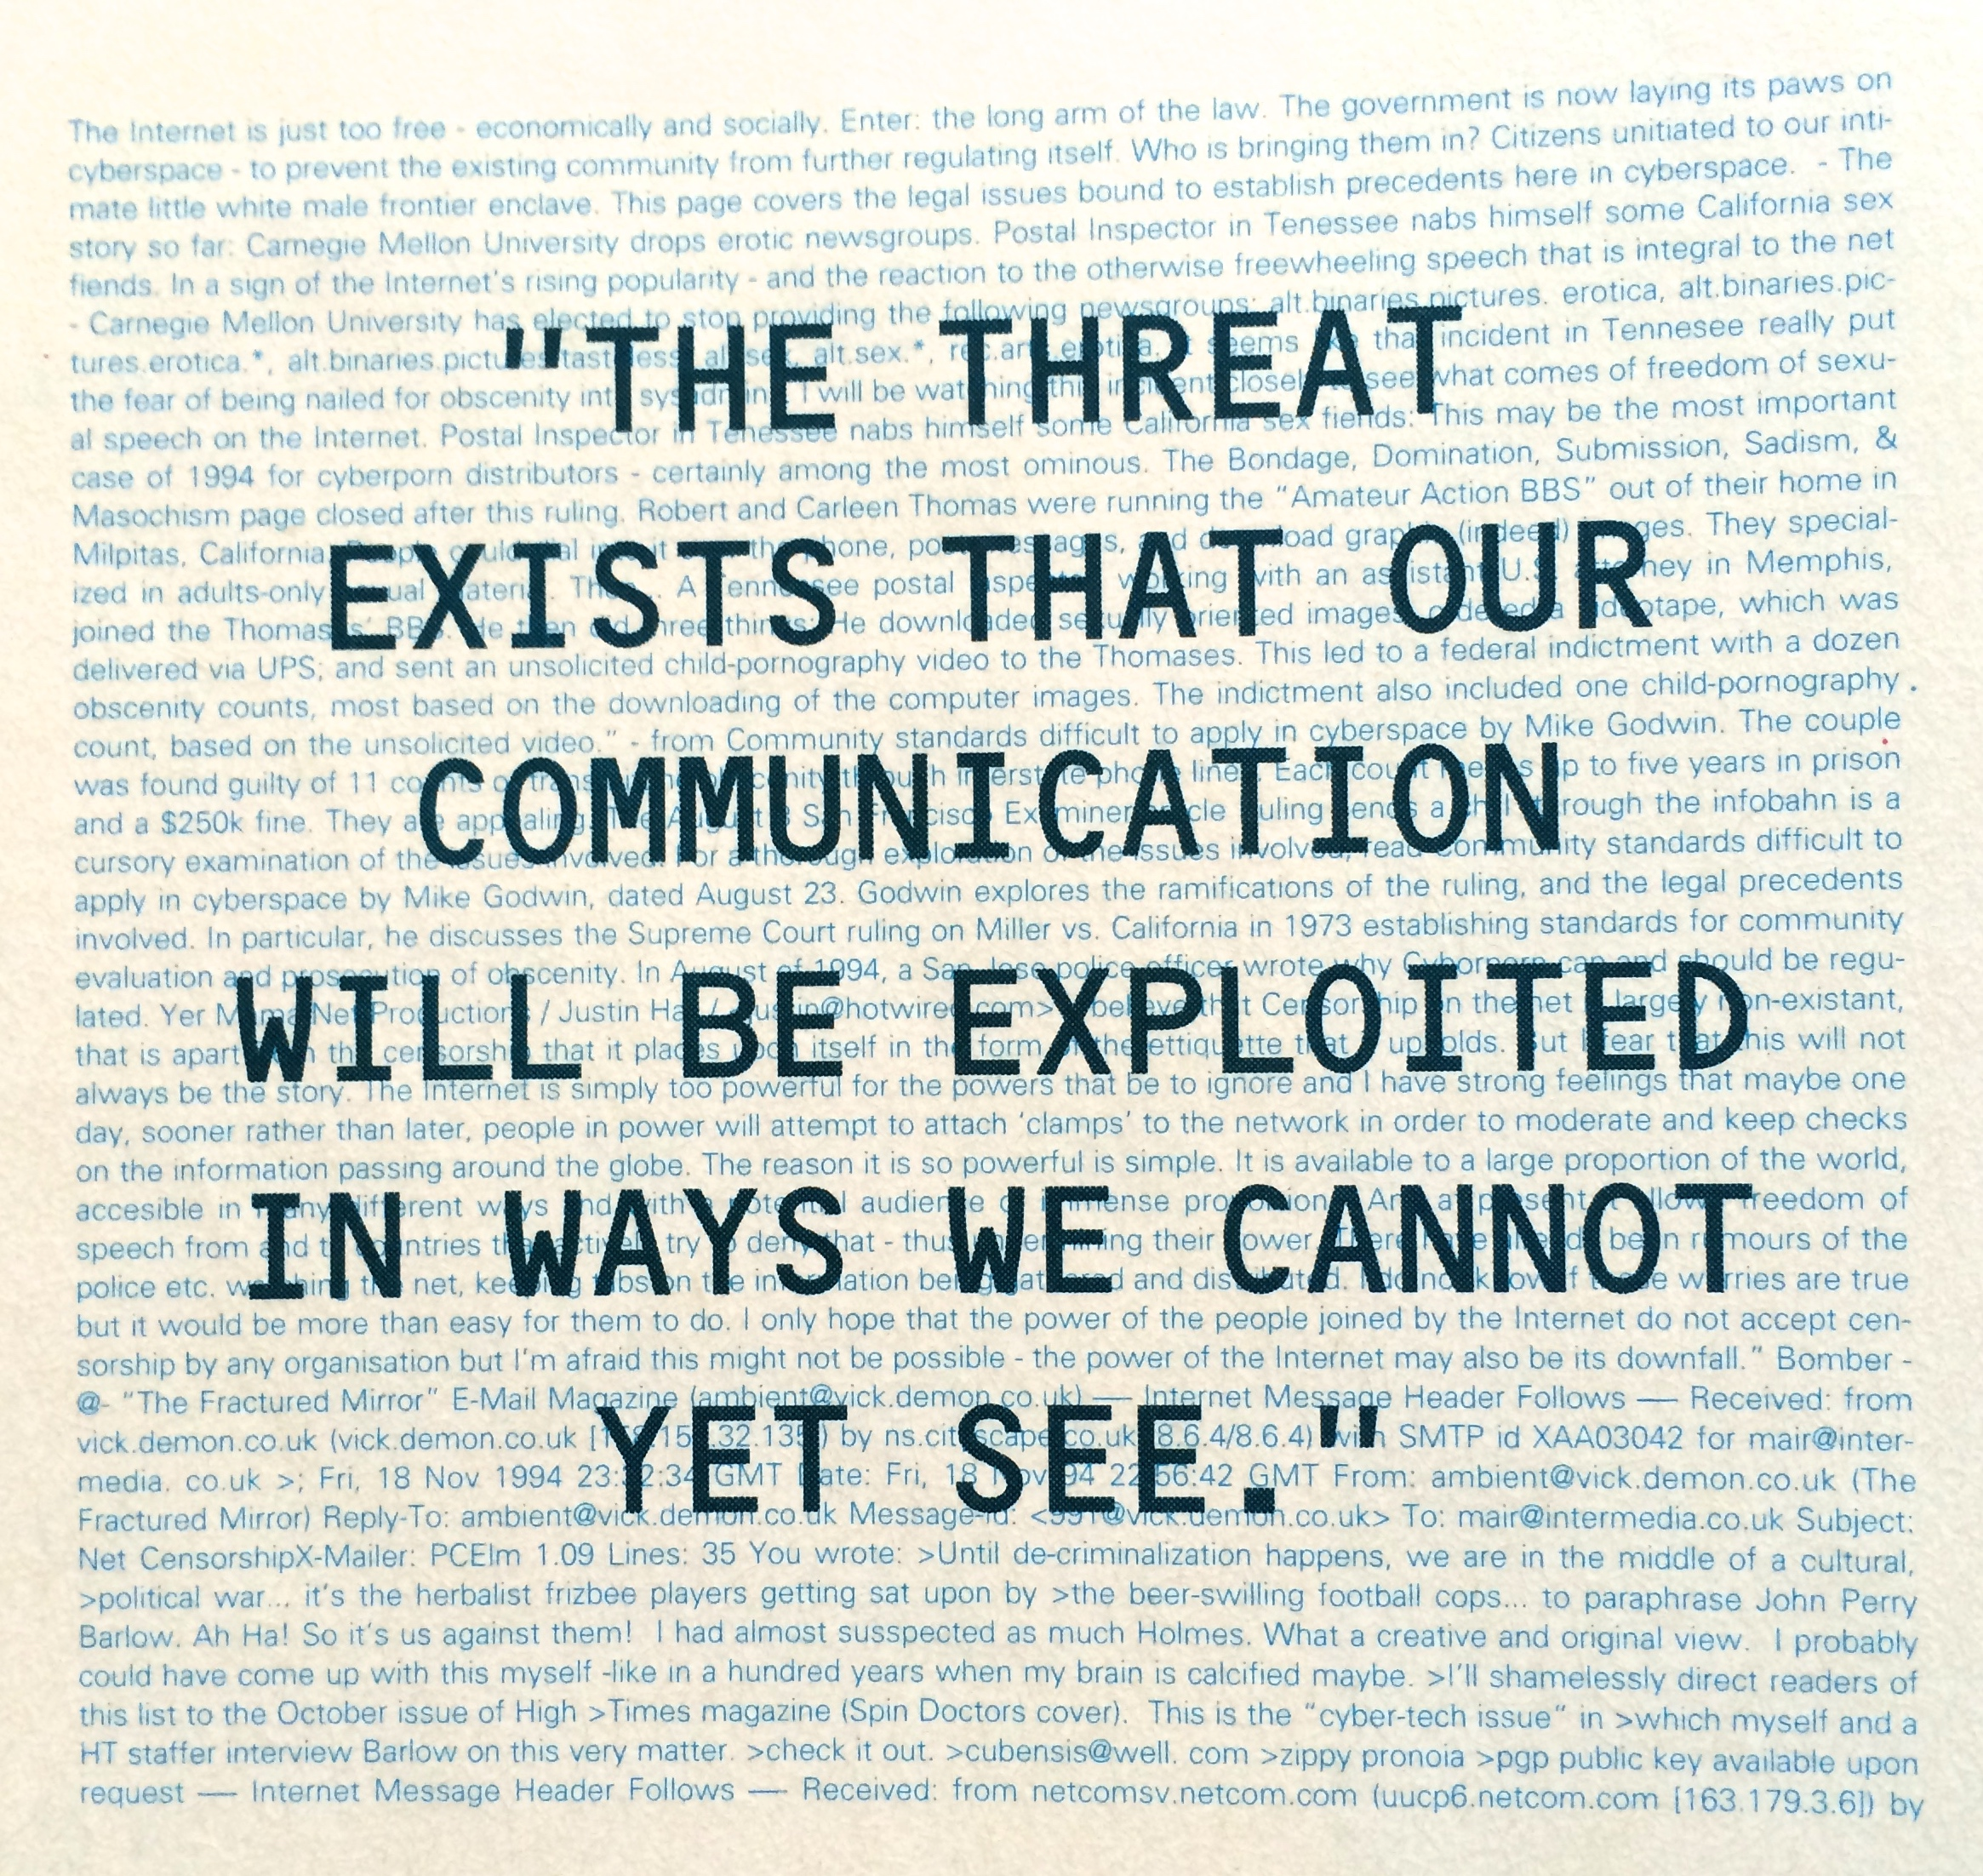 The threat exists that our communication will be exploited in ways we cannot yet imagine